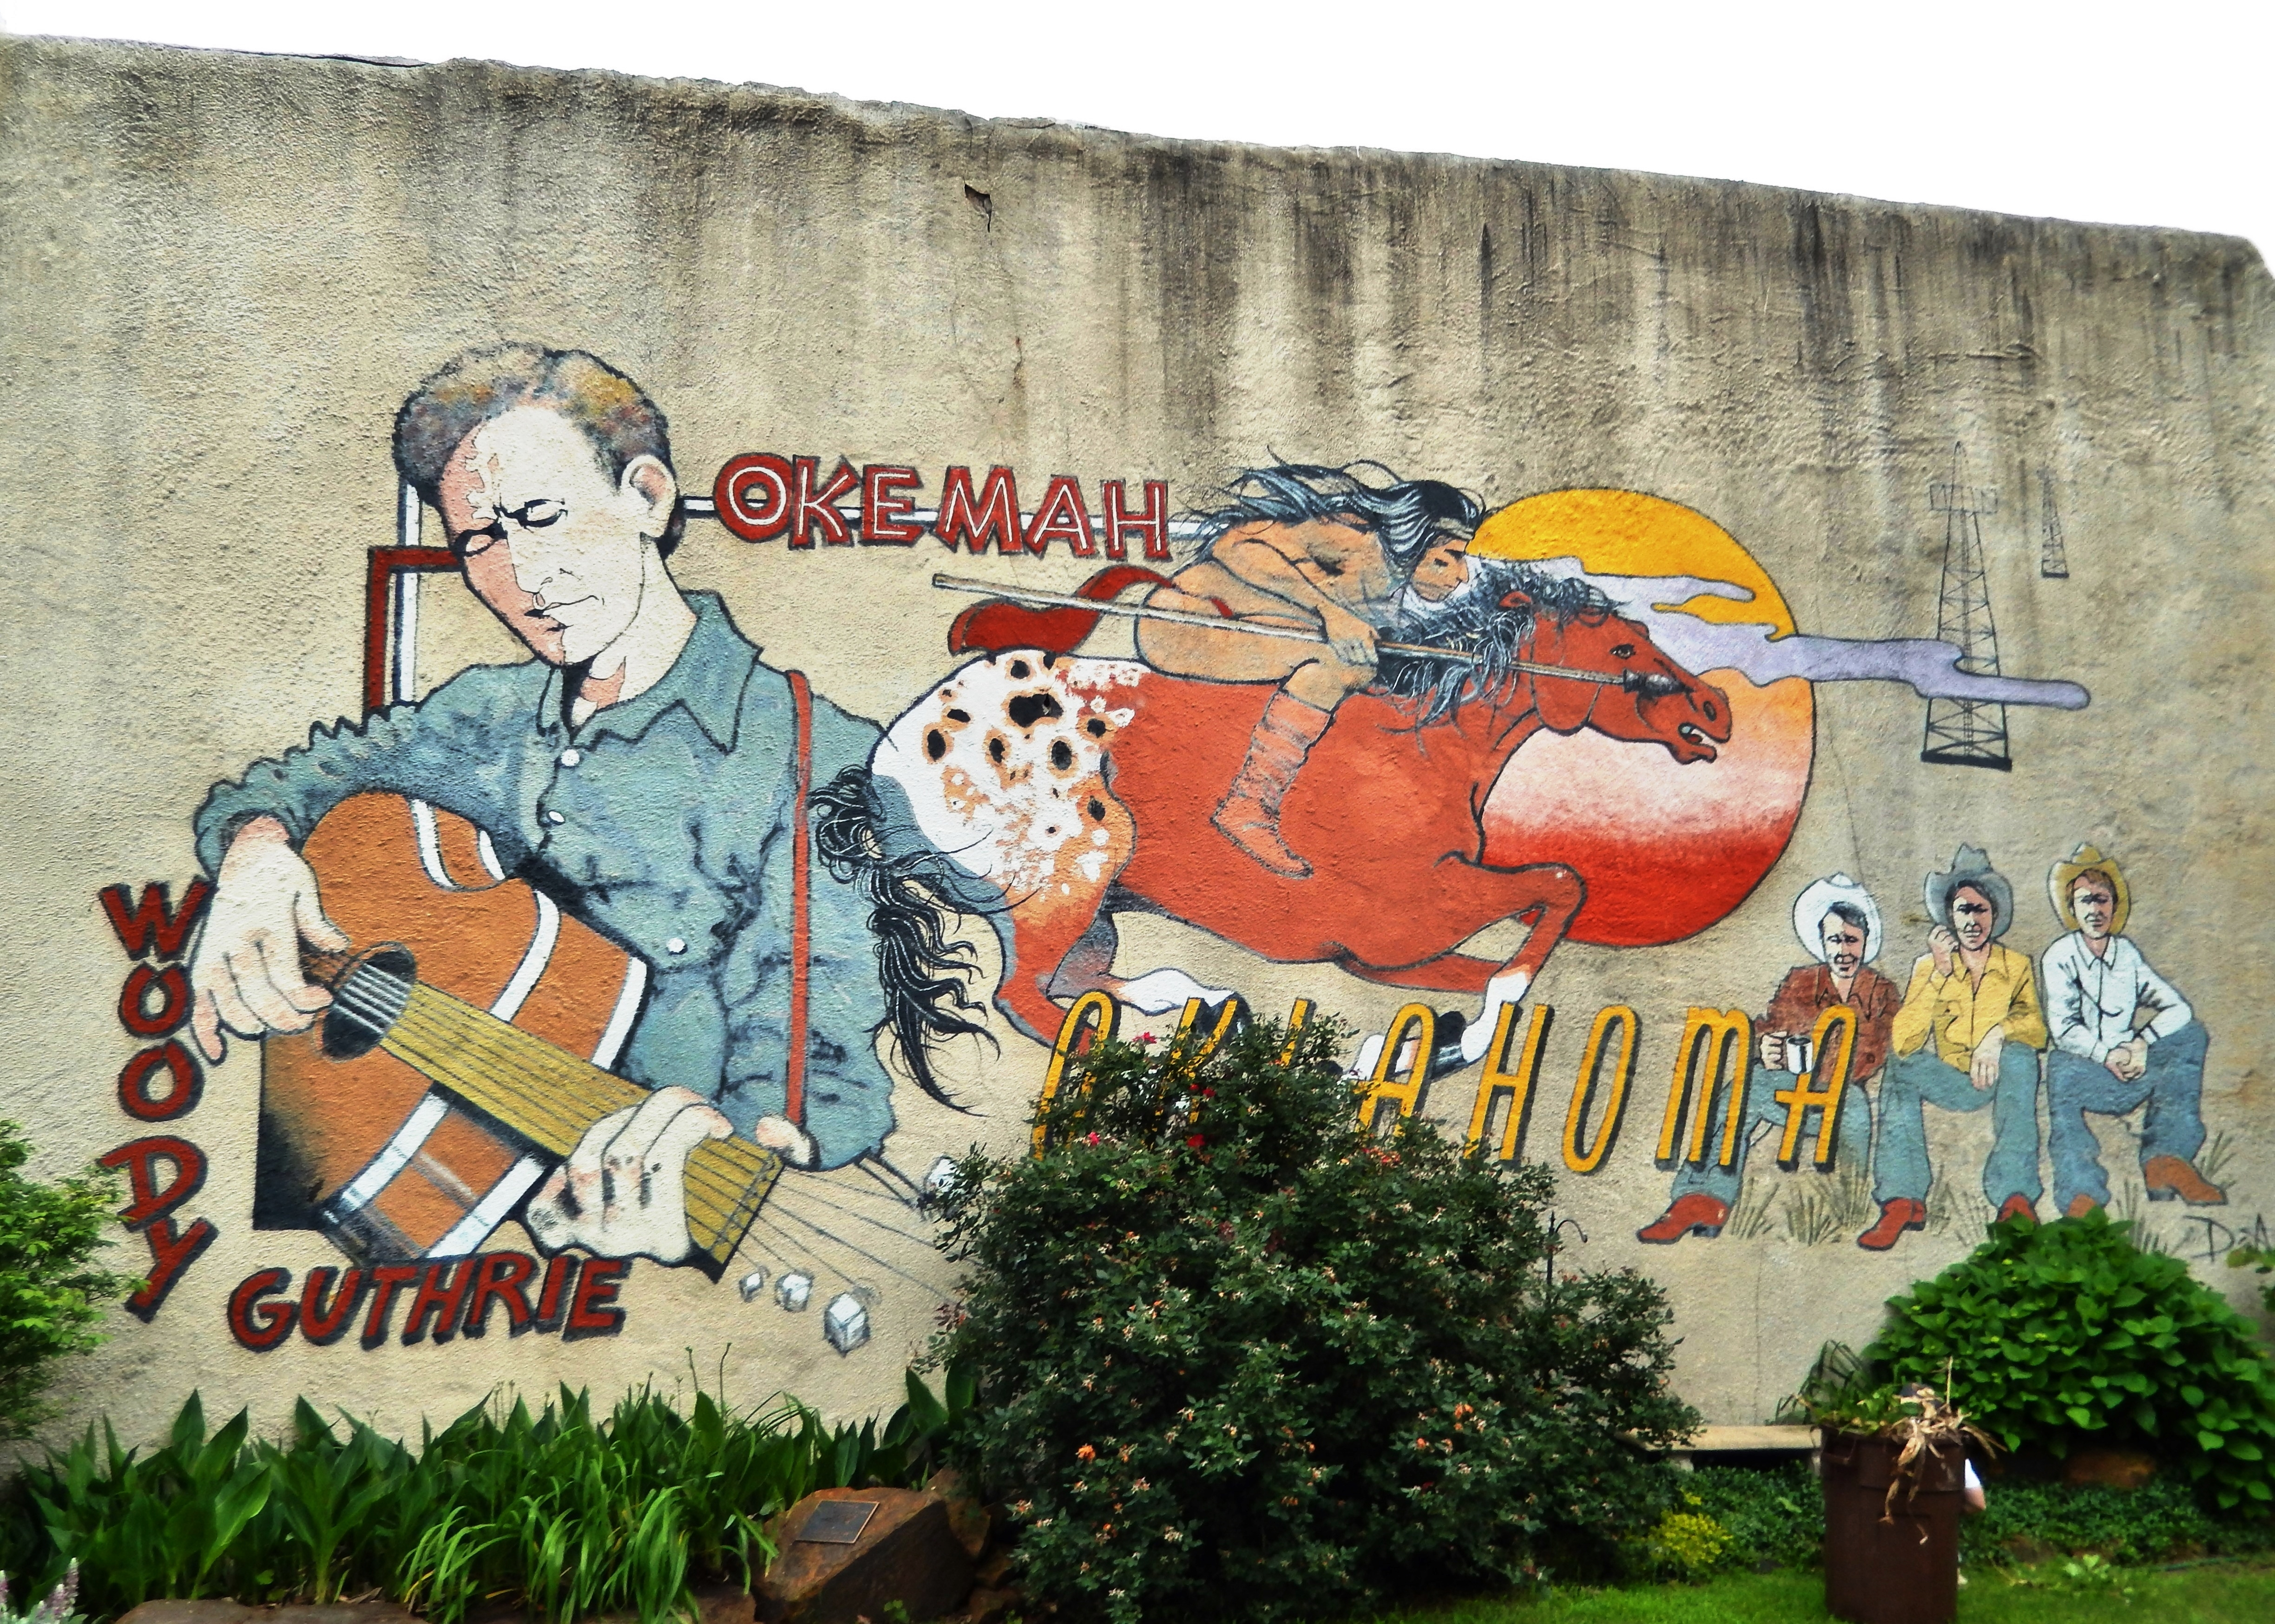 Woody Guthrie Mural (<i>located near marker</i>)